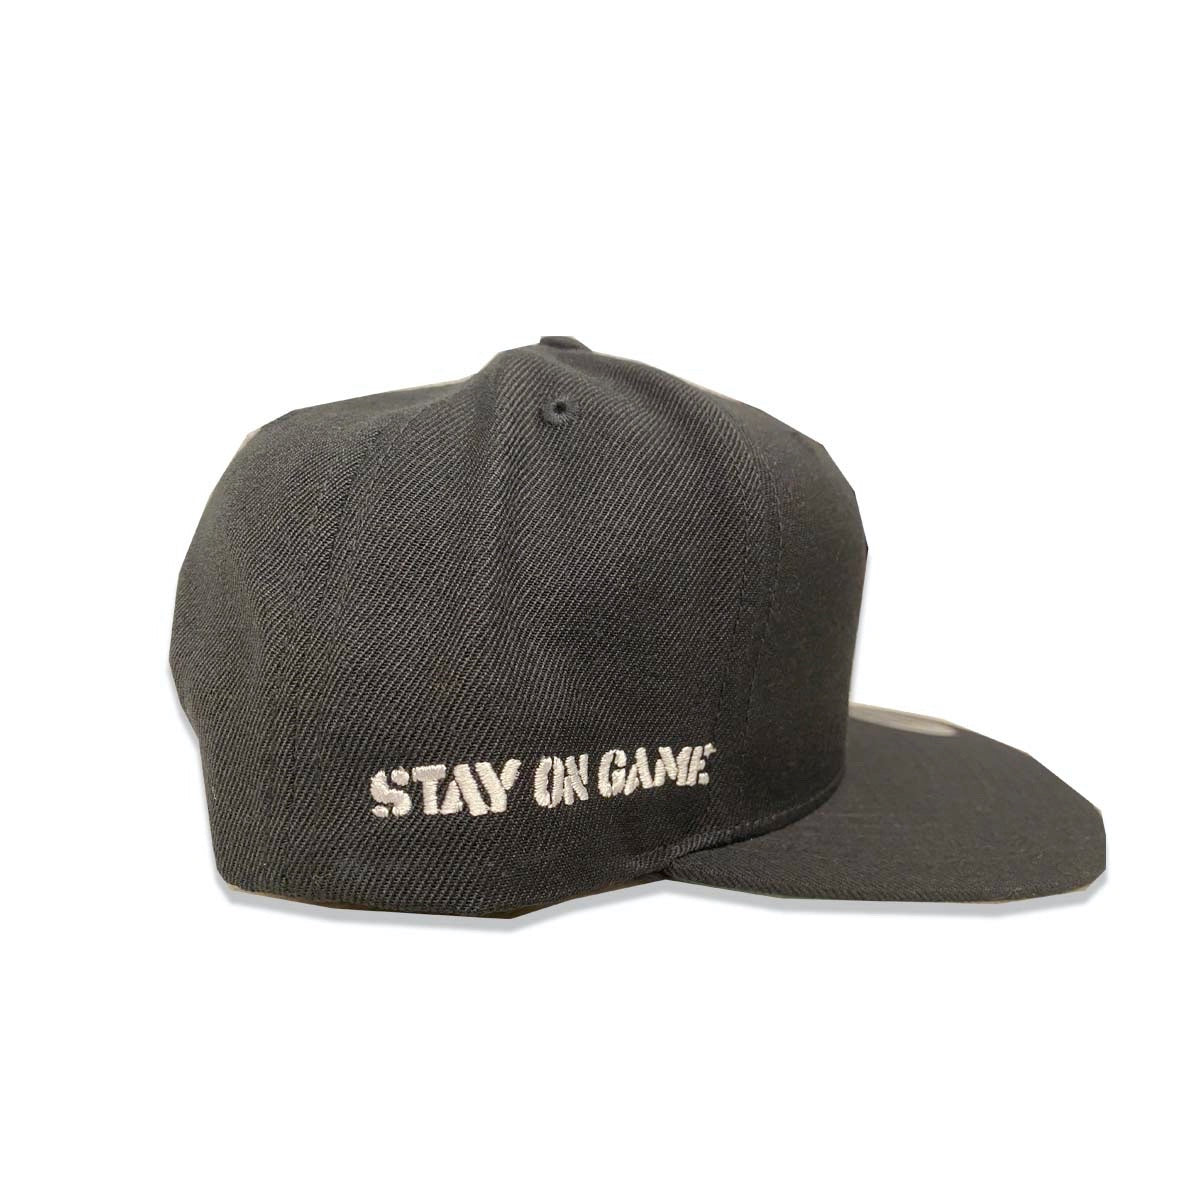 """Stay on Game"" - Hat"